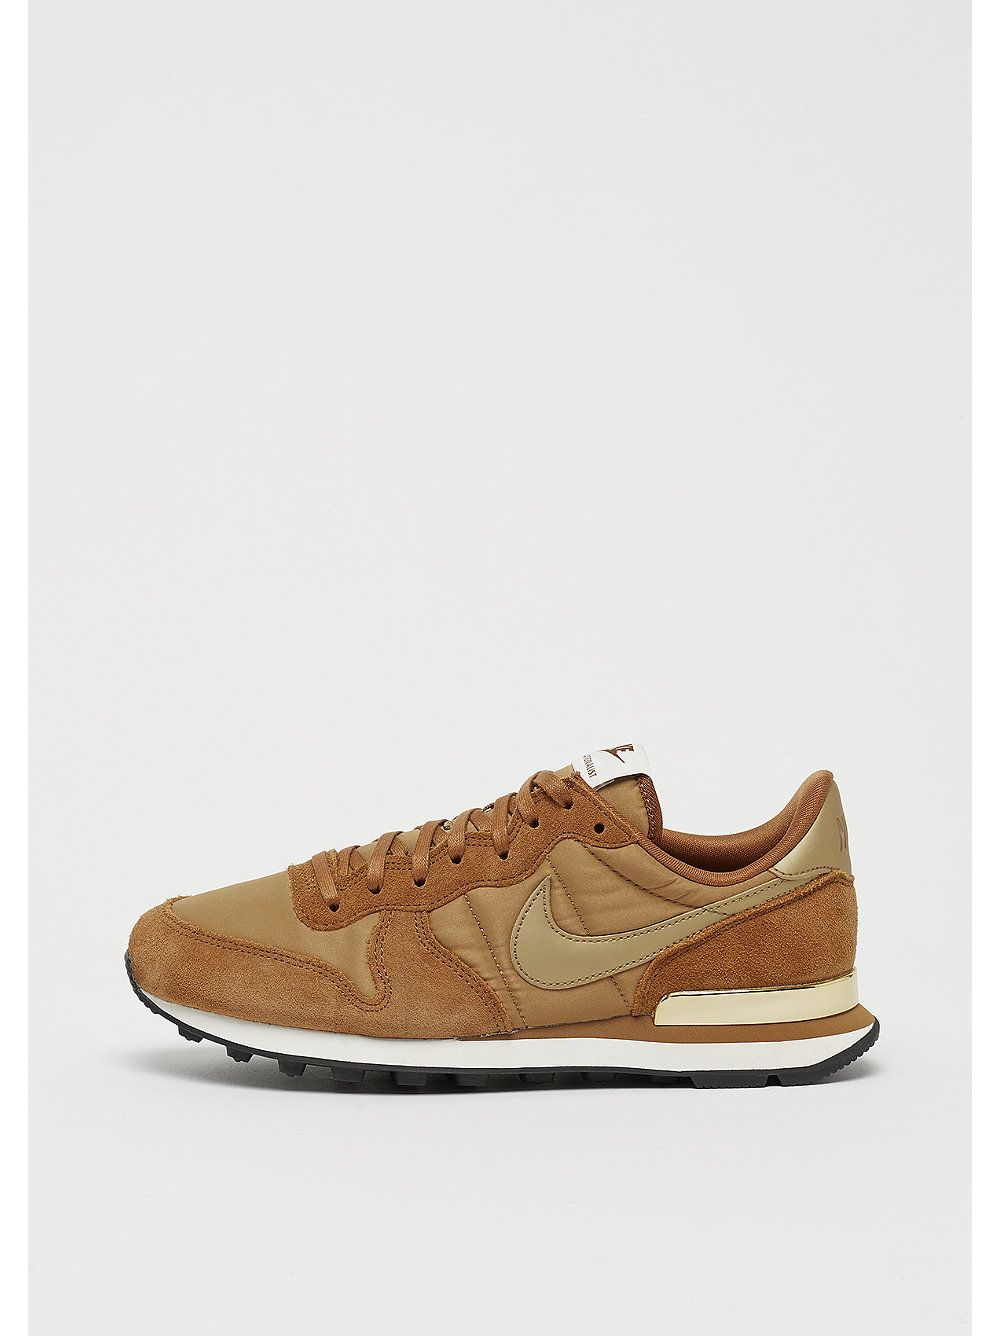 official photos 87bb6 b5bfd ... Shoe Buy NIKE Internationalist ale brown metallic gold golden beige ...